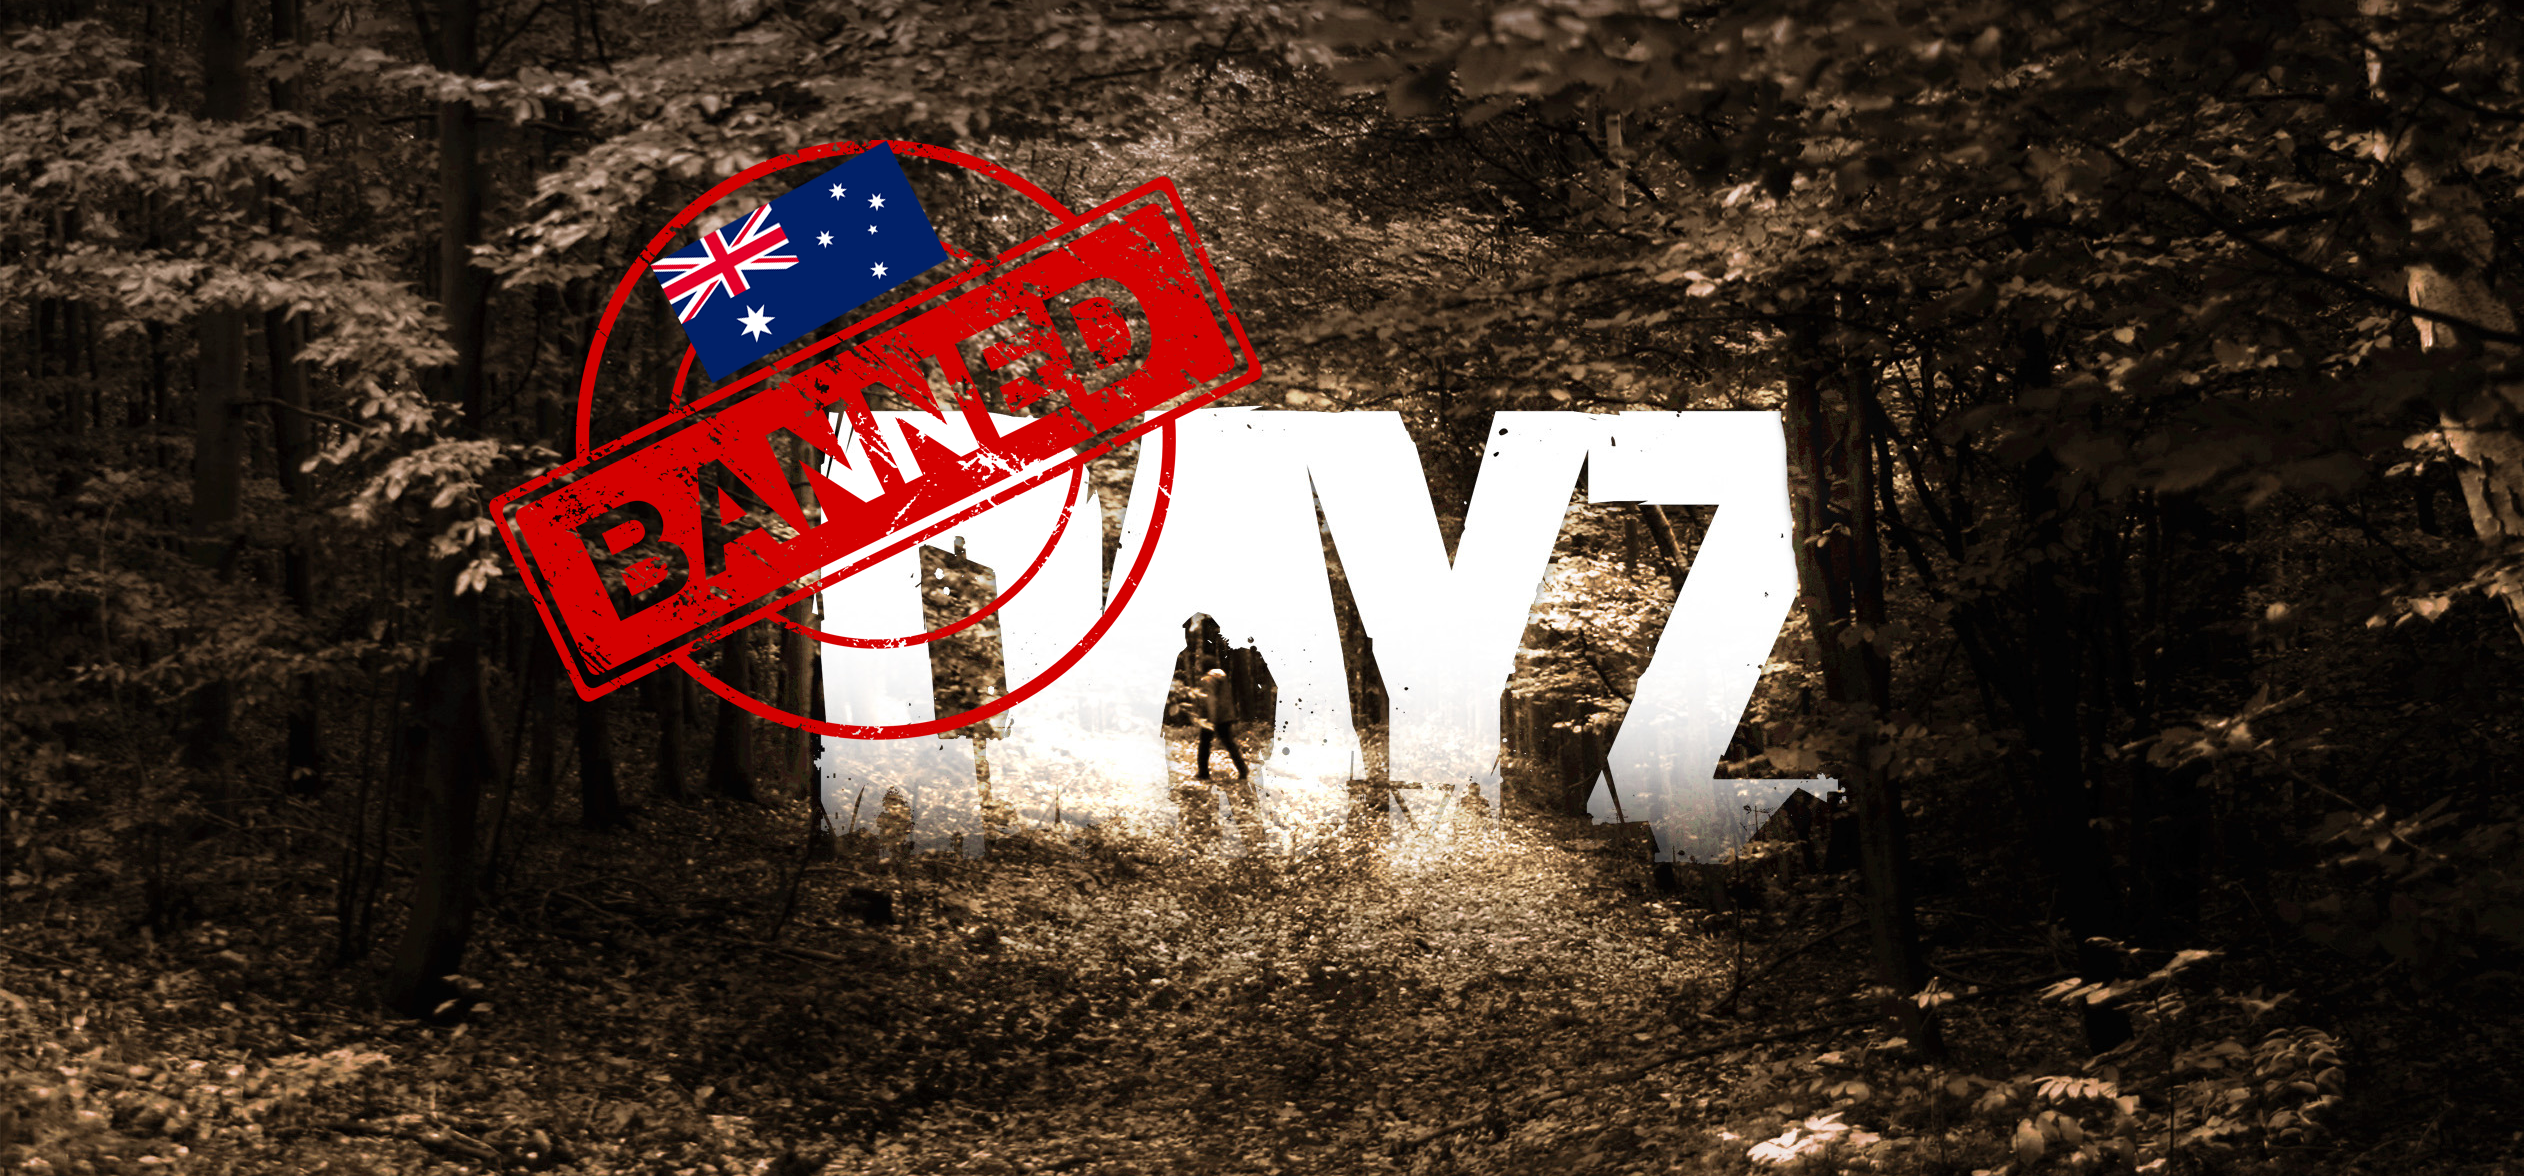 Day Z is like Schrödinger's cat, both banned and not banned in Australia ??